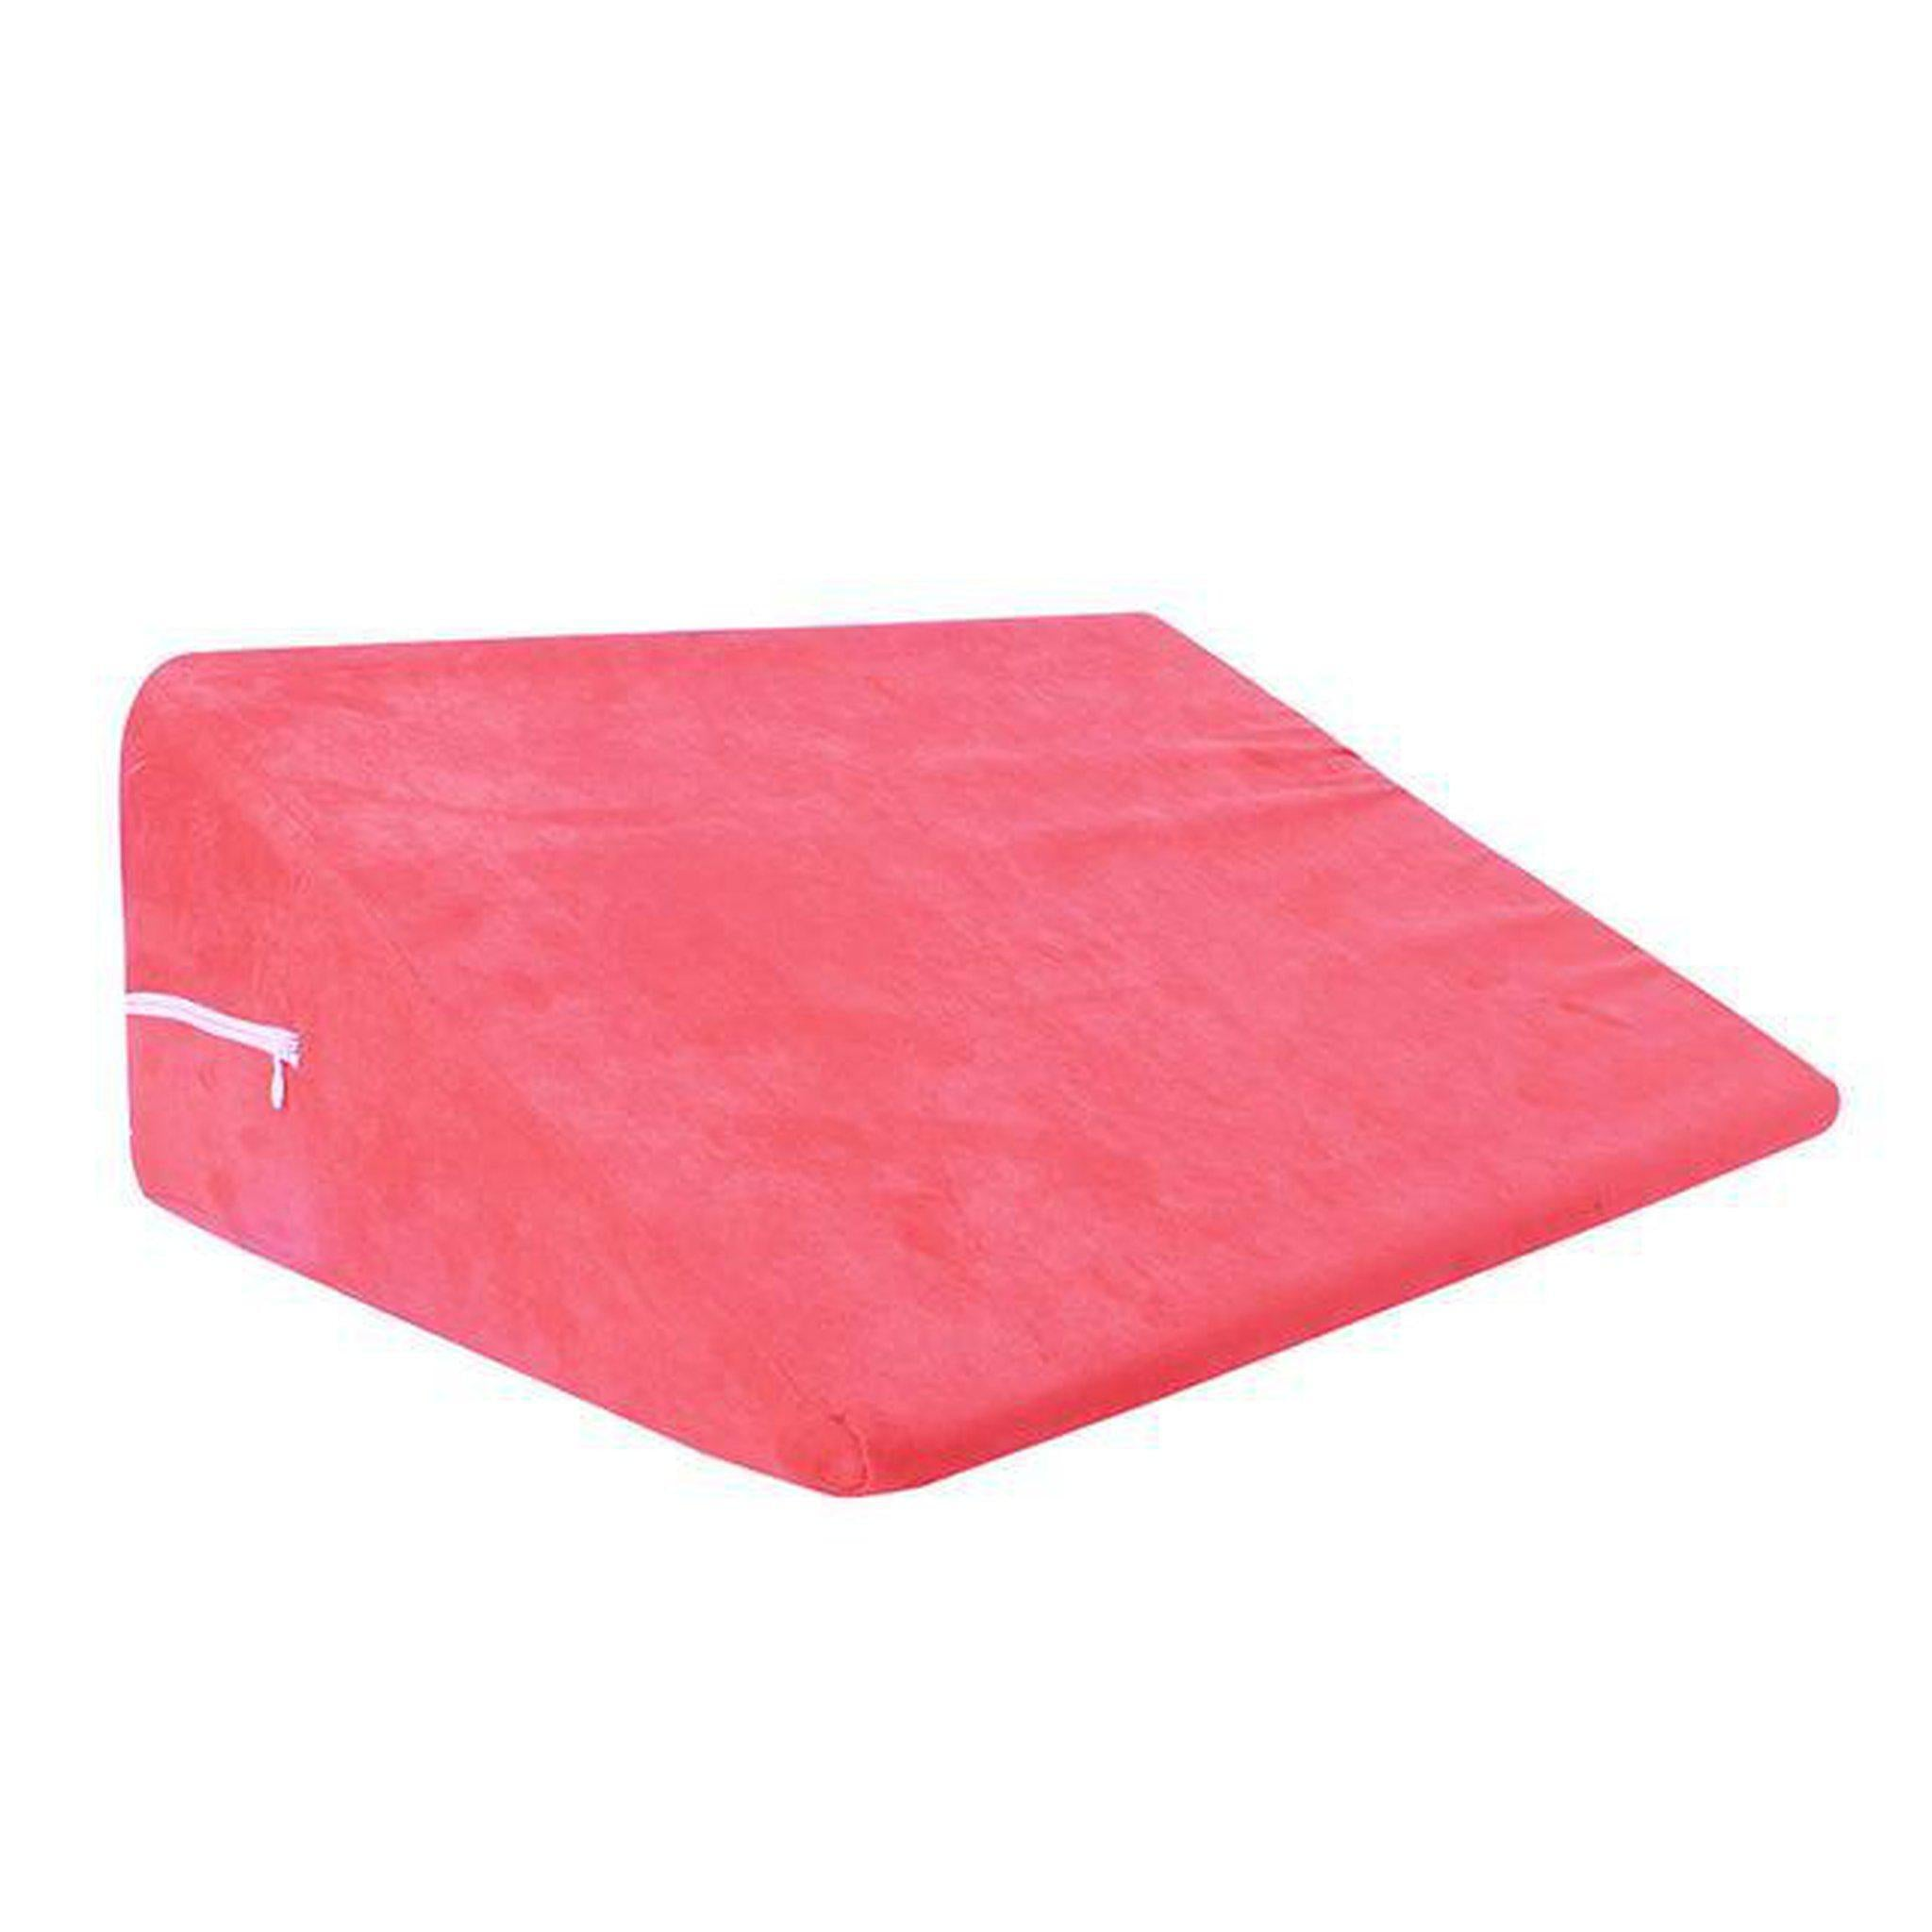 Foam Wedge Pillow-Good Girl xox-Pink-buy-bdsm-bondage-gear-tools-toys-online-good-girl-xox